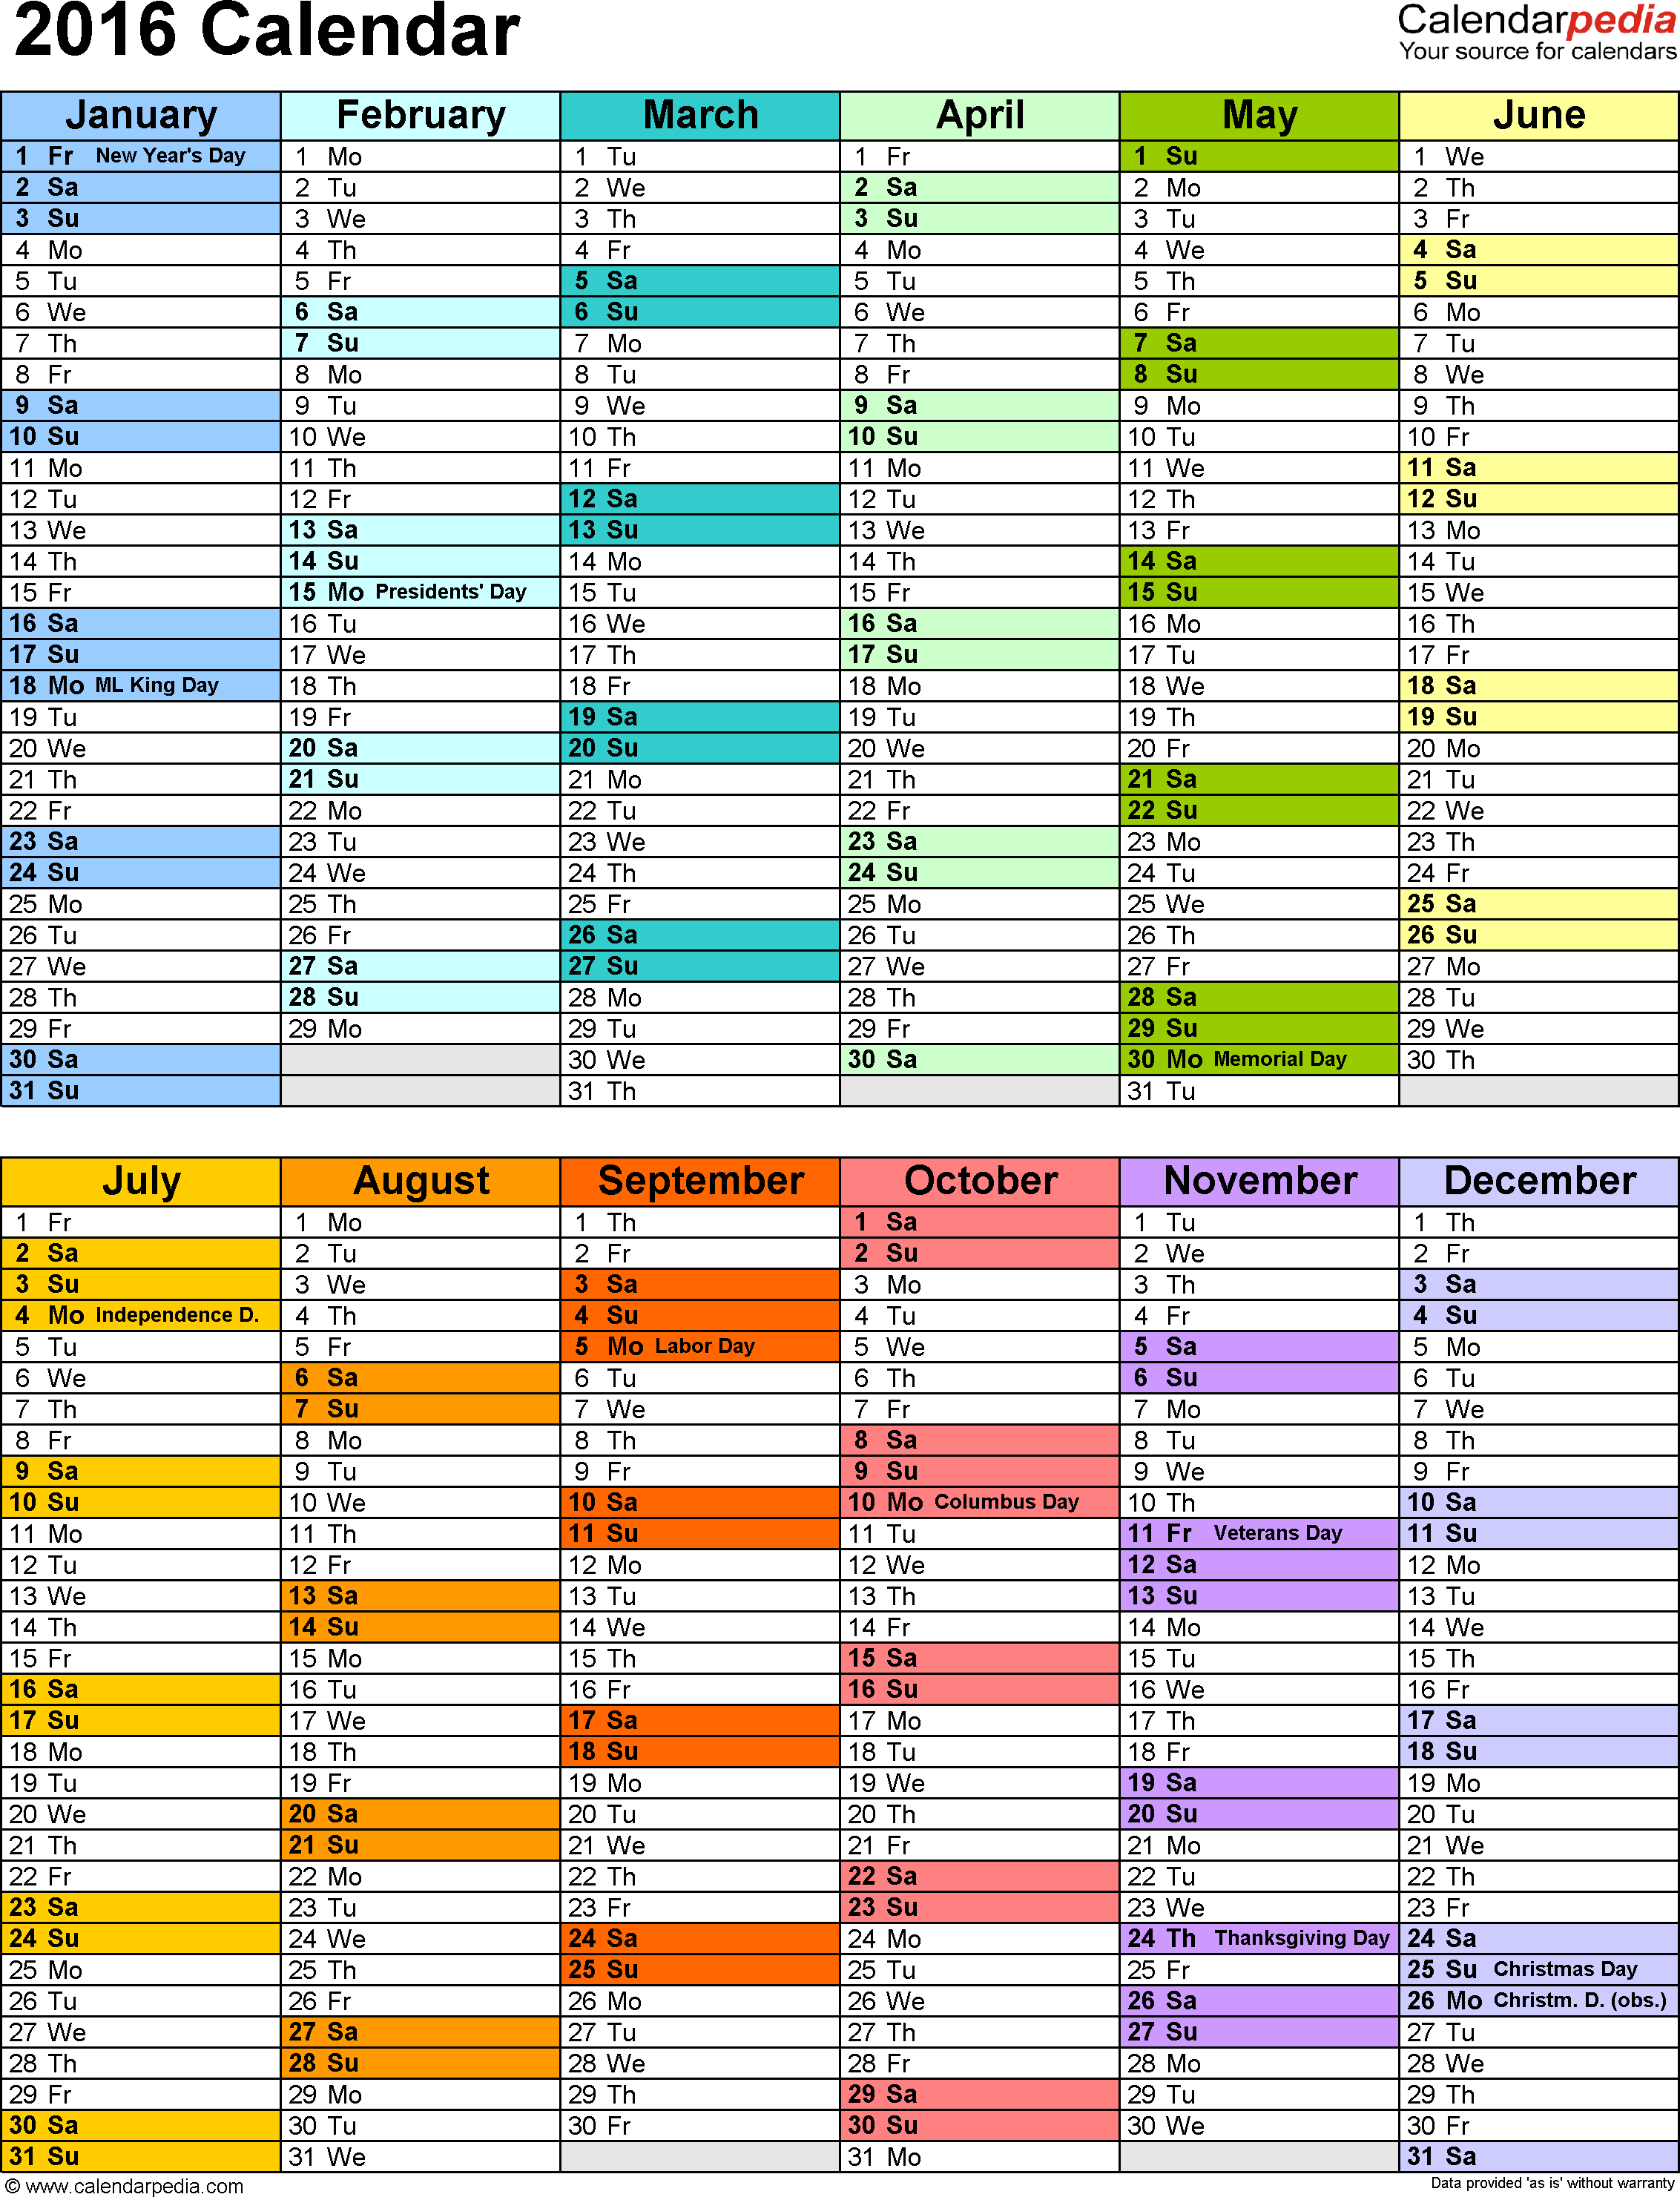 5 Year Plan Template - Download excel template for 2016 calendar template 14 two half year blocks on one